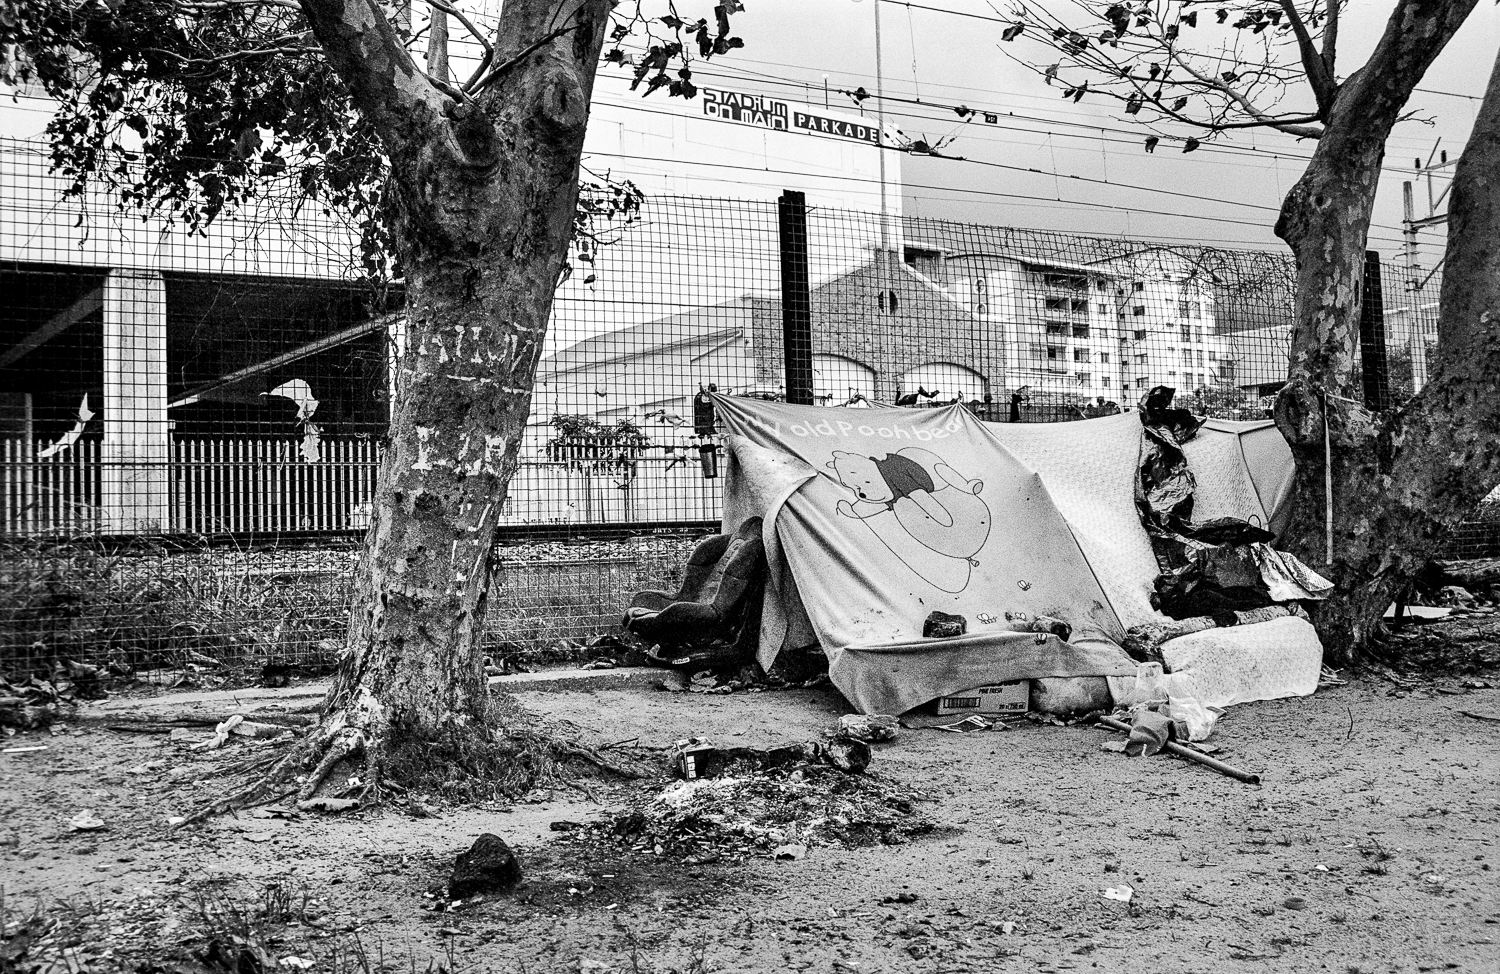 Campsite for shelter at the back of Stadium on Main, Claremont, 2013.